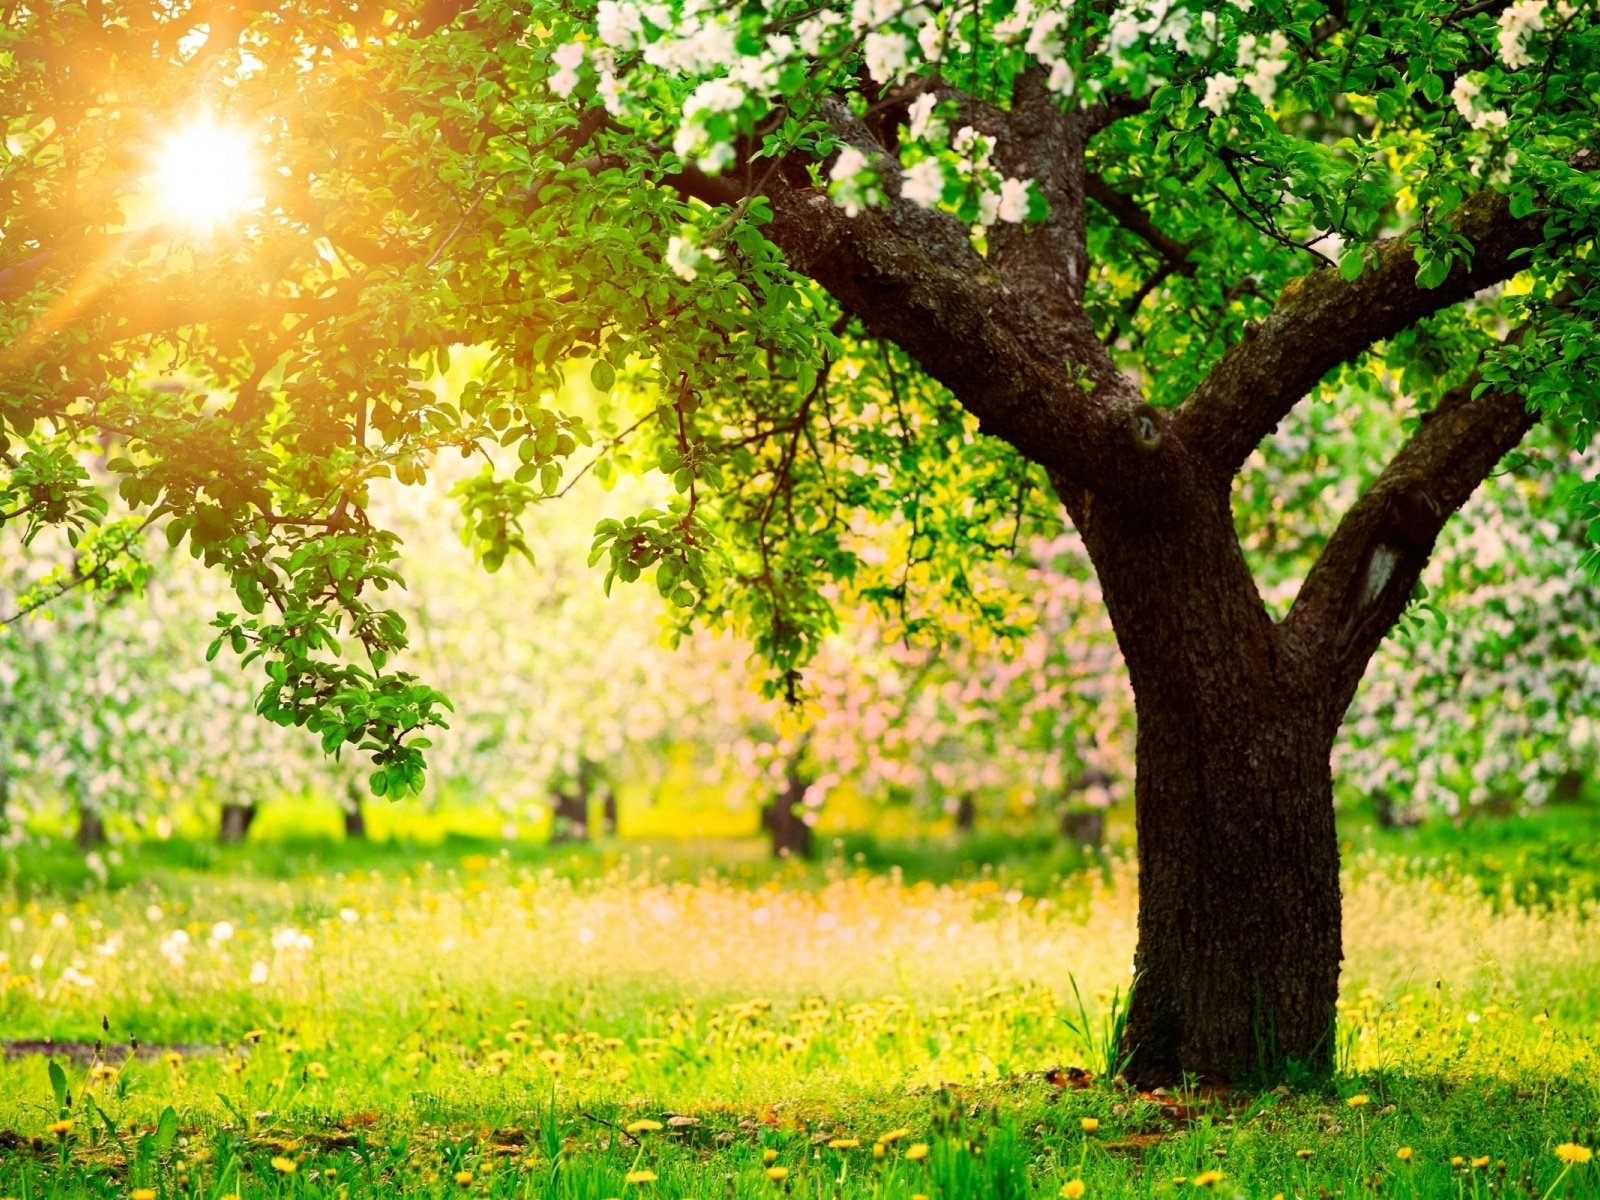 1500x500 Trees Grass Flowers Sunny Day Twitter Header Photo